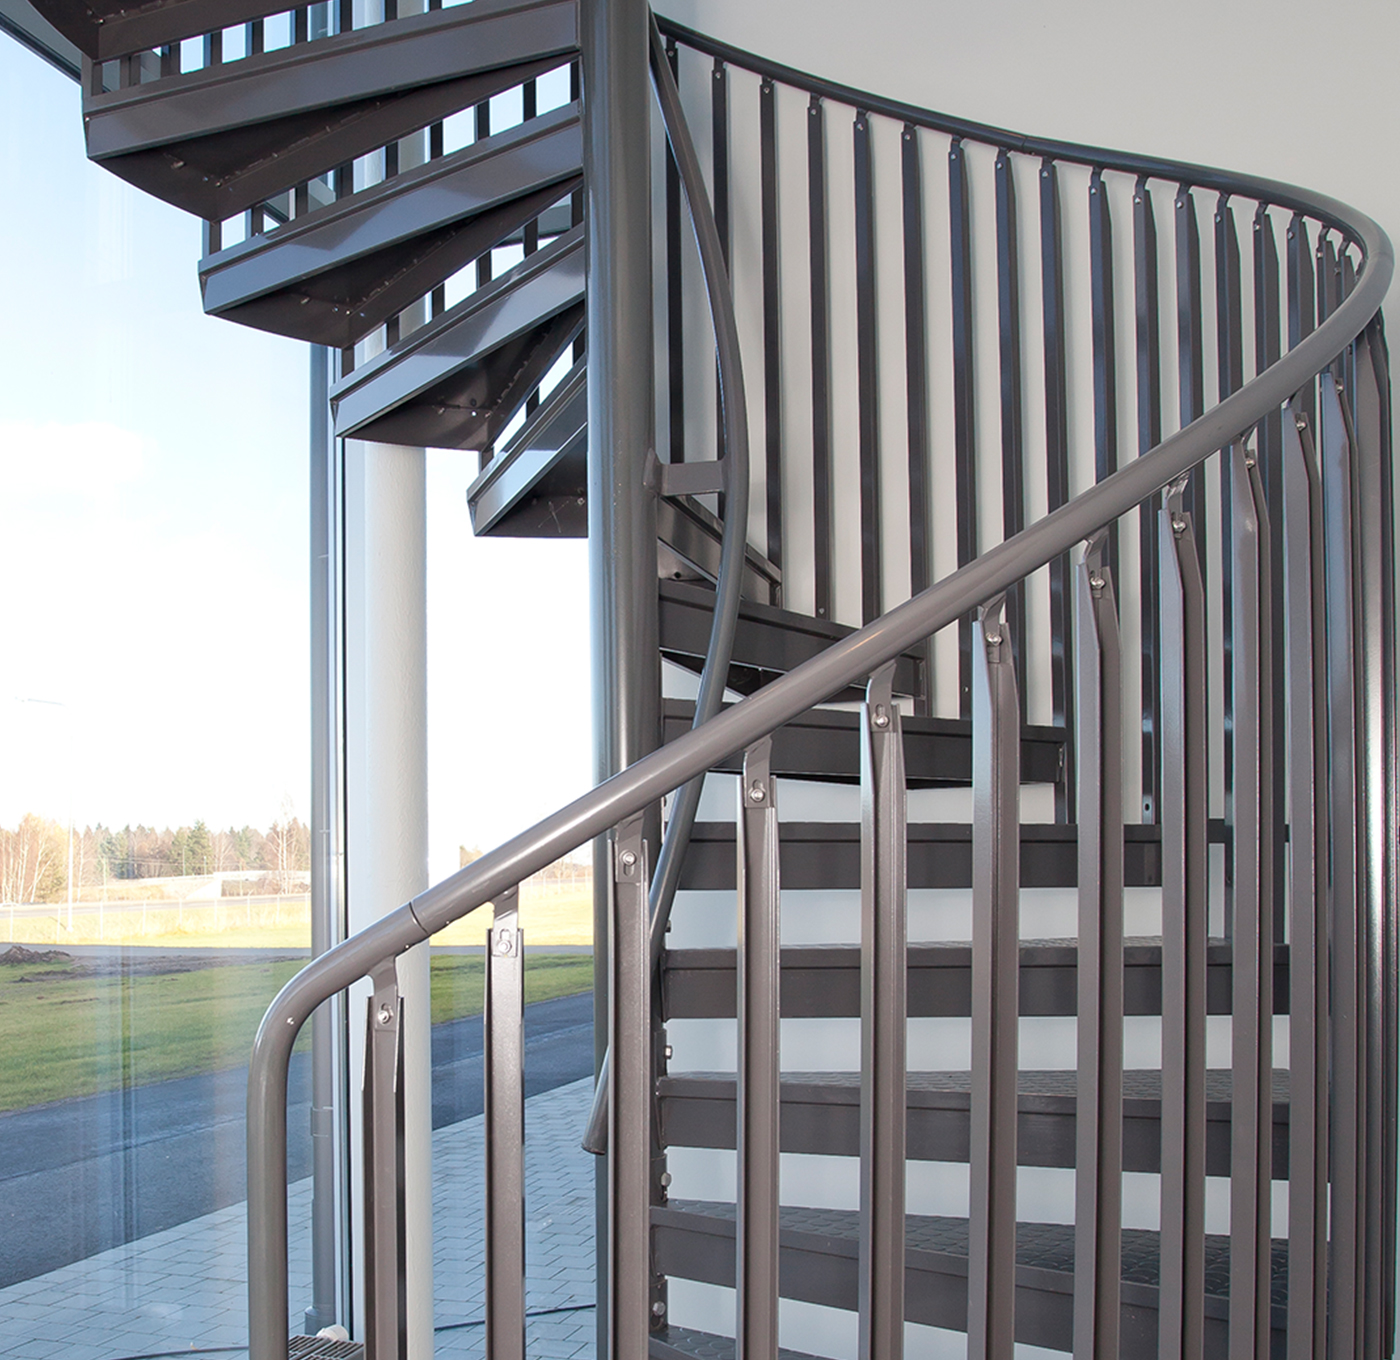 Powder coated spiral staircase with handrail on center tube and childsafe railing